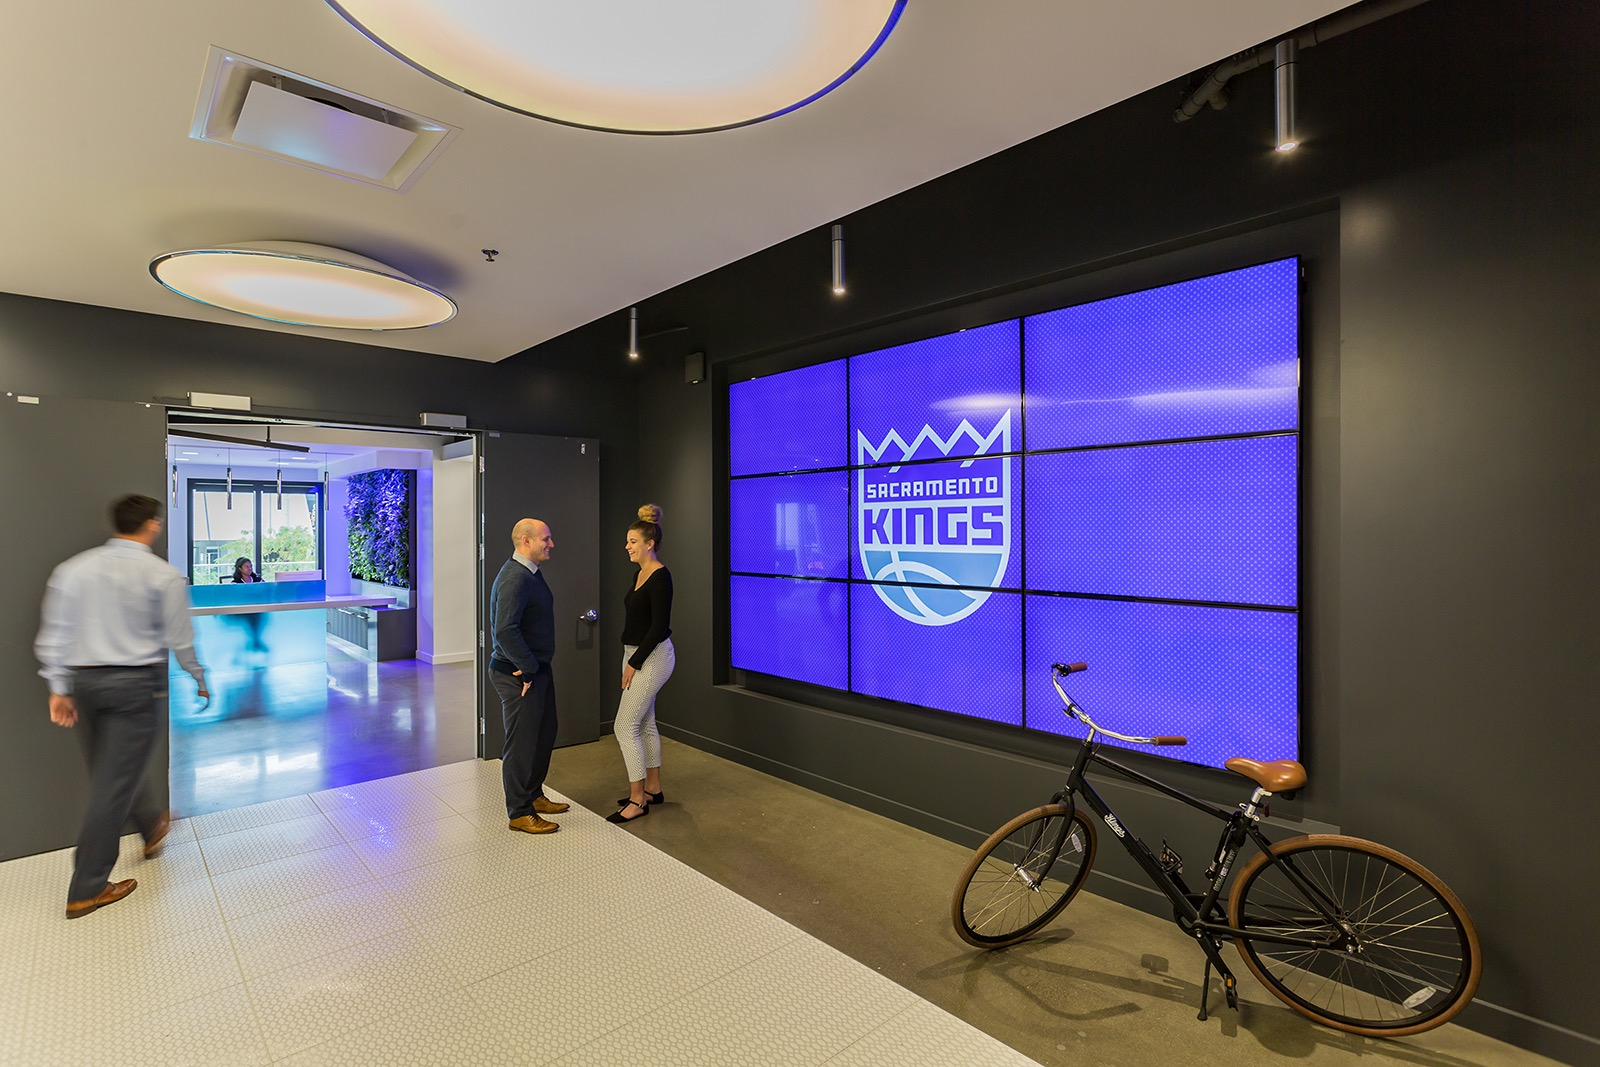 sacramento-kings-office-15